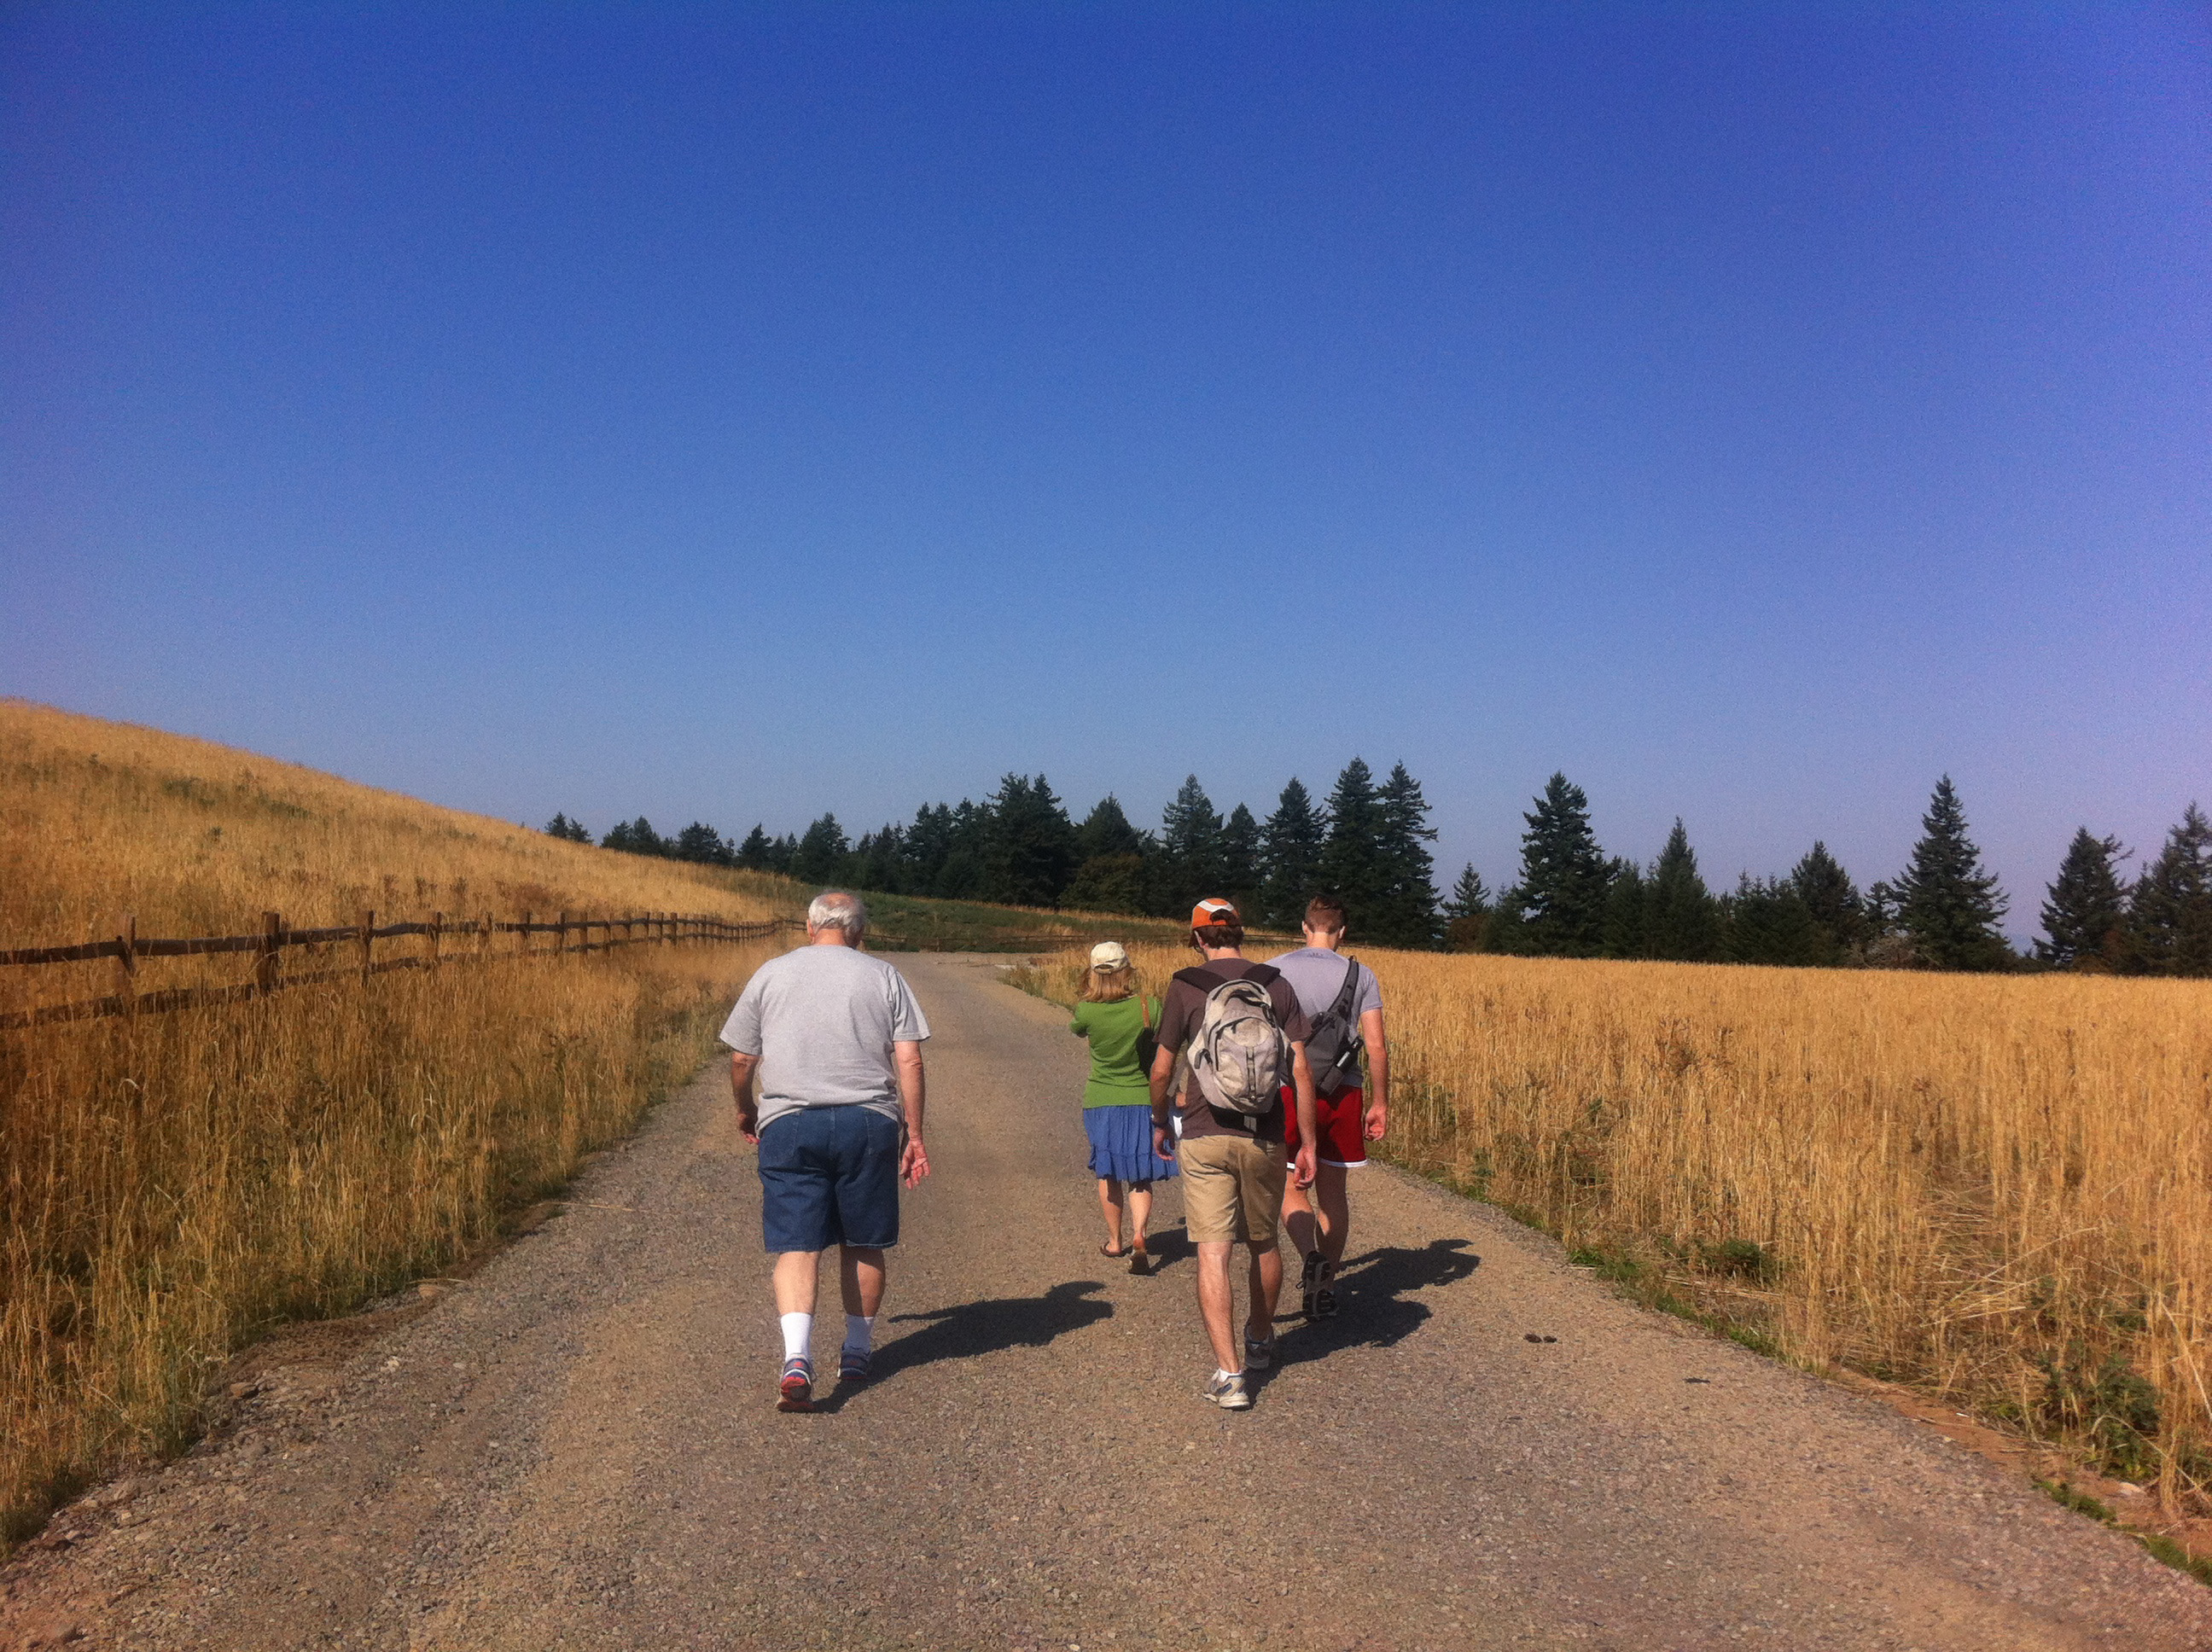 Members of Sellwood Faith Community in Portland, Ore., take a meditation hike in which participants take in nature and stop periodically to read Scripture and spiritual poetry. Photo courtesy of the Rev. Eilidh Lowery